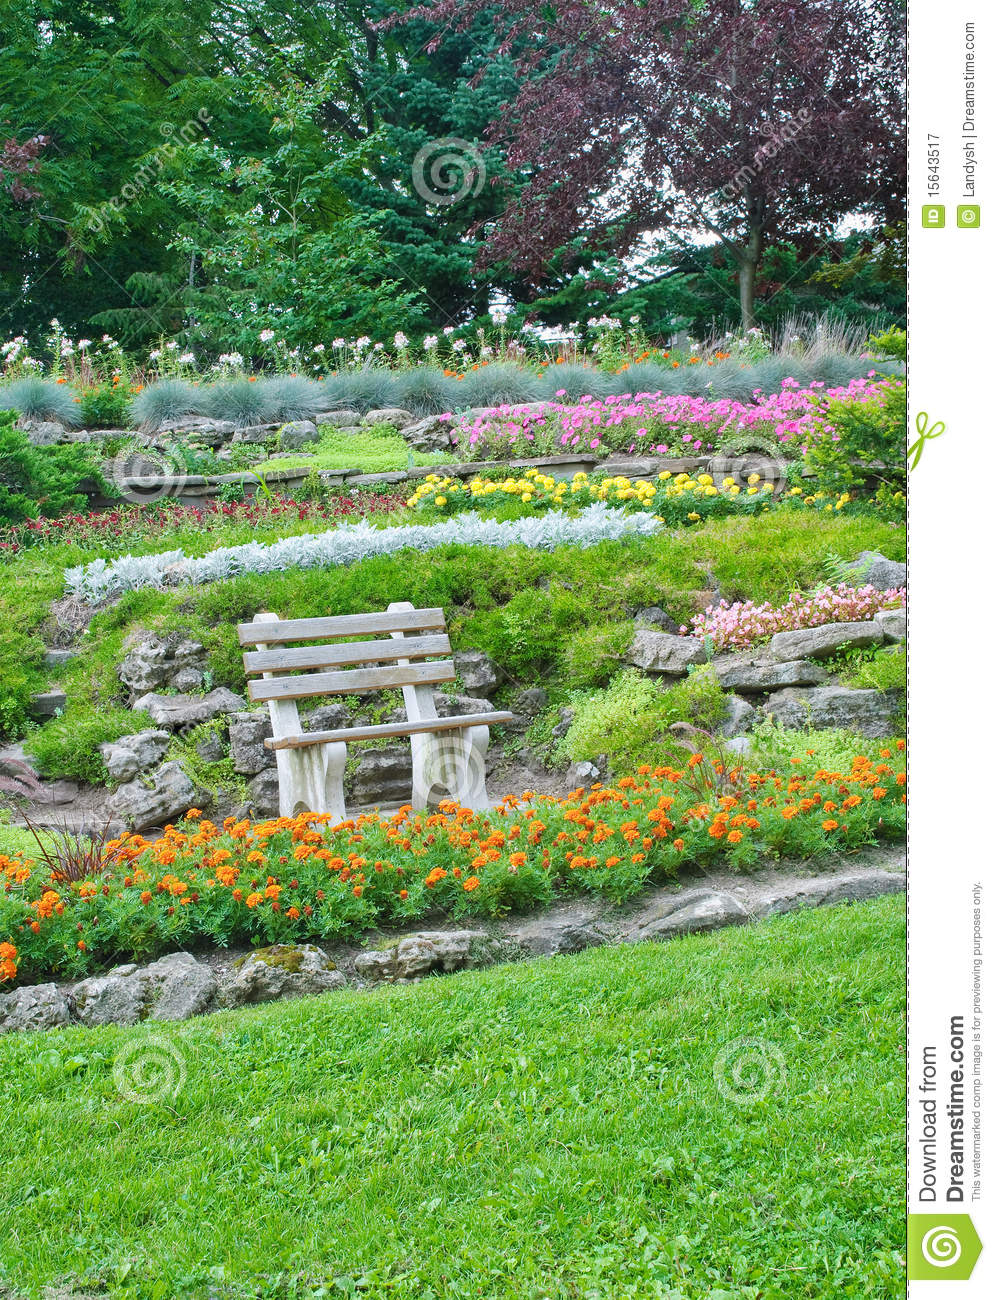 Summer Park, Bench In A Garden, Flowers, Plants Royalty ...